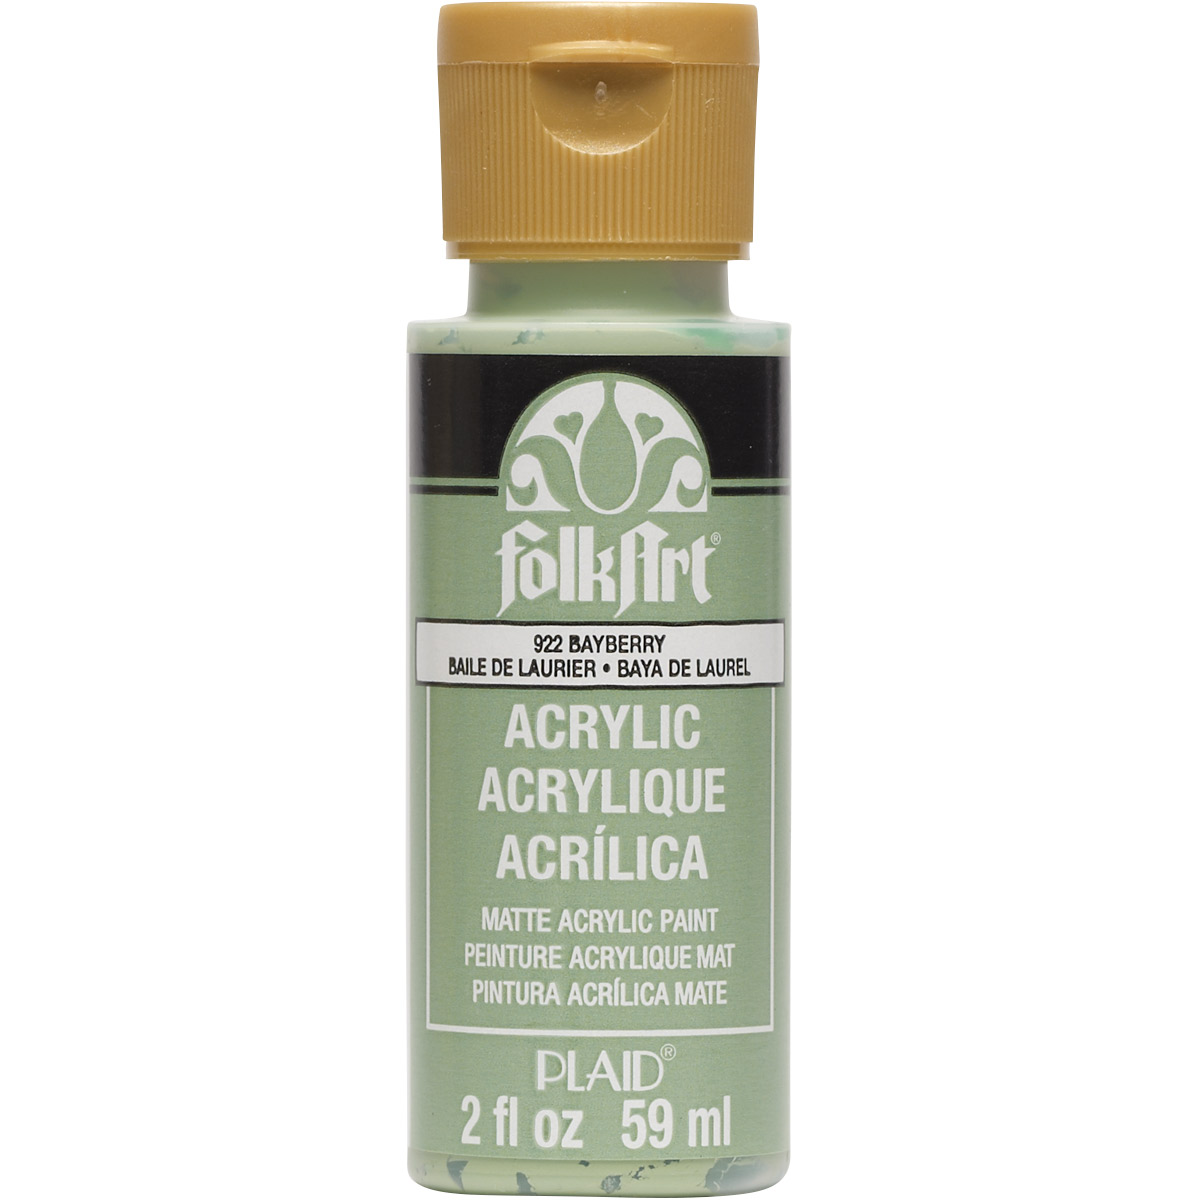 FolkArt ® Acrylic Colors - Bayberry, 2 oz. - 922